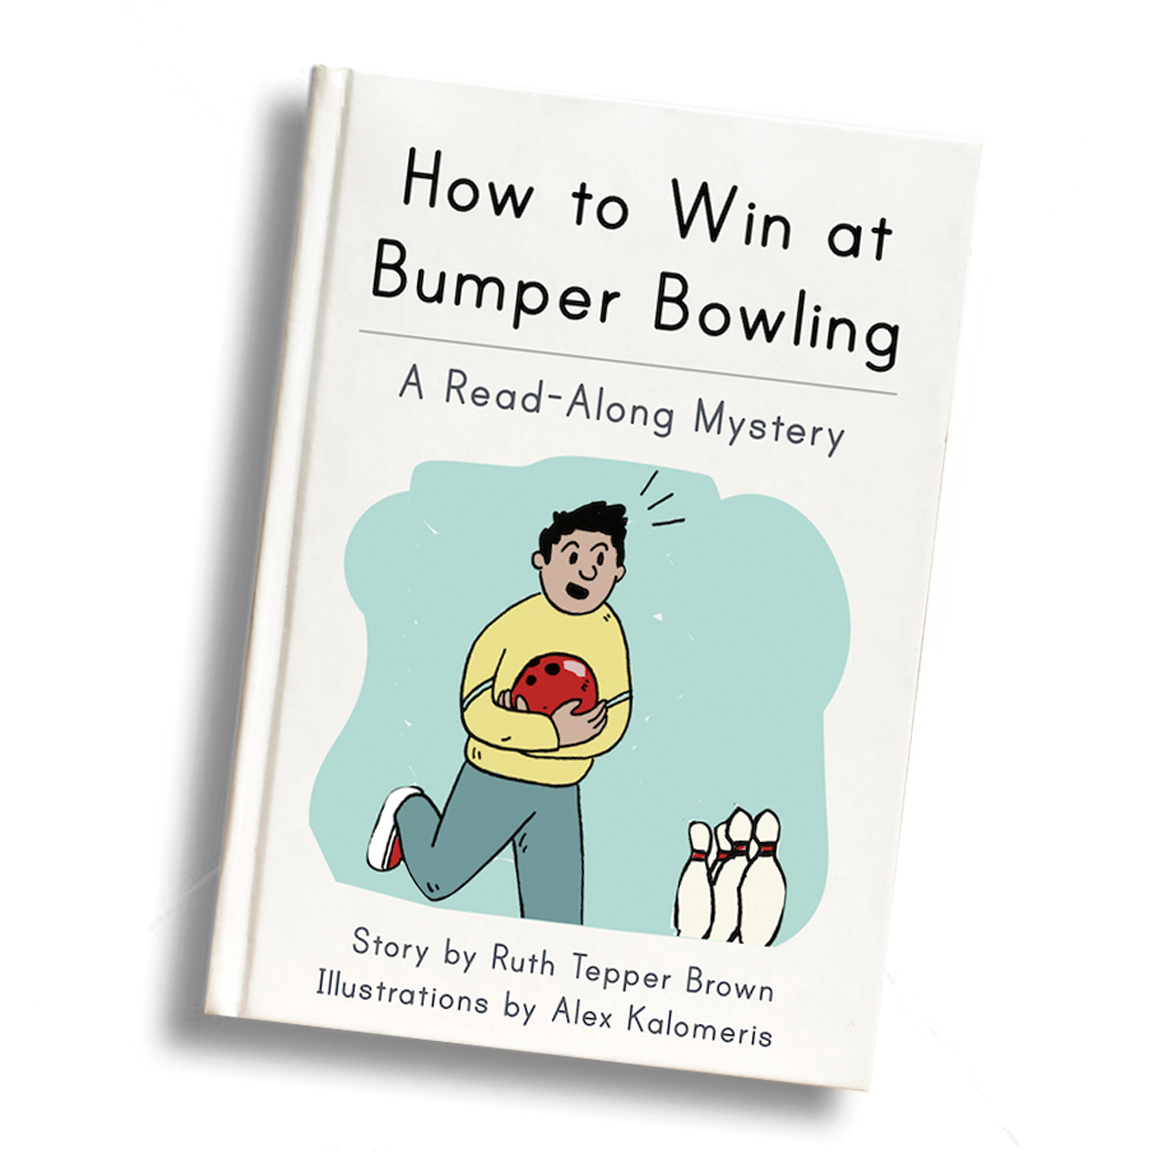 How can you knock down the most bowling pins?